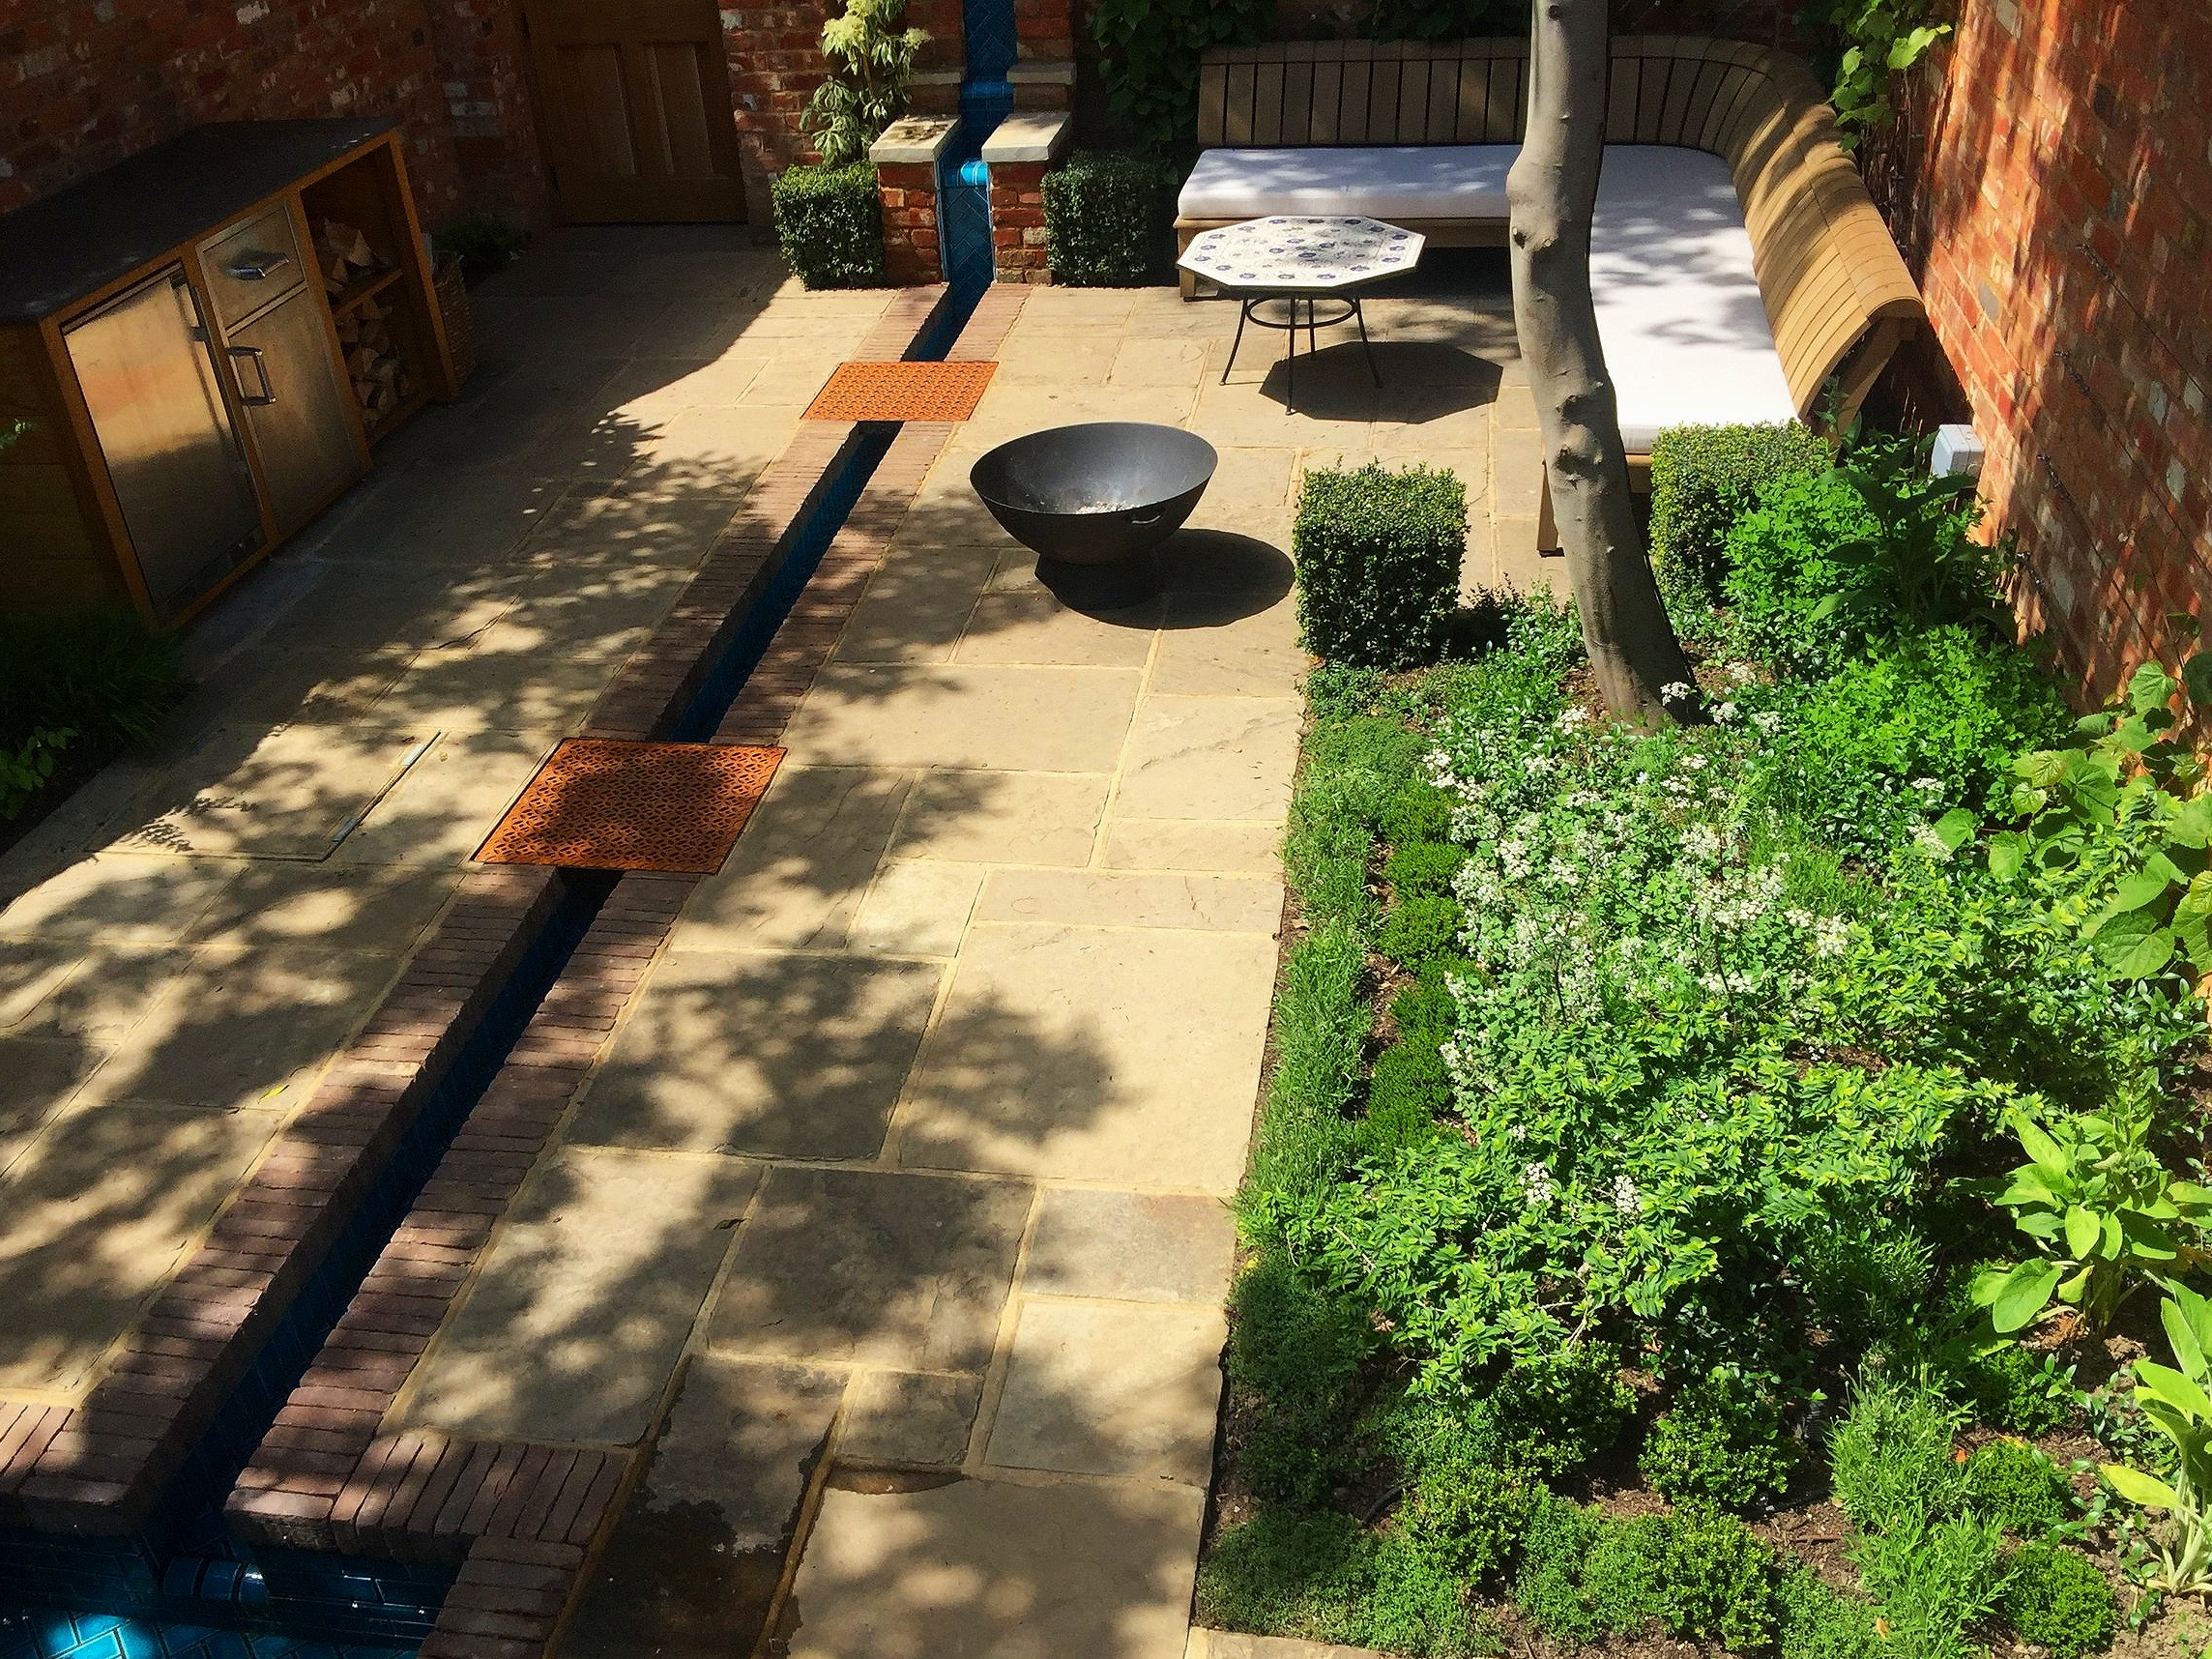 new barn garden design windsor berkshire_2516.jpeg